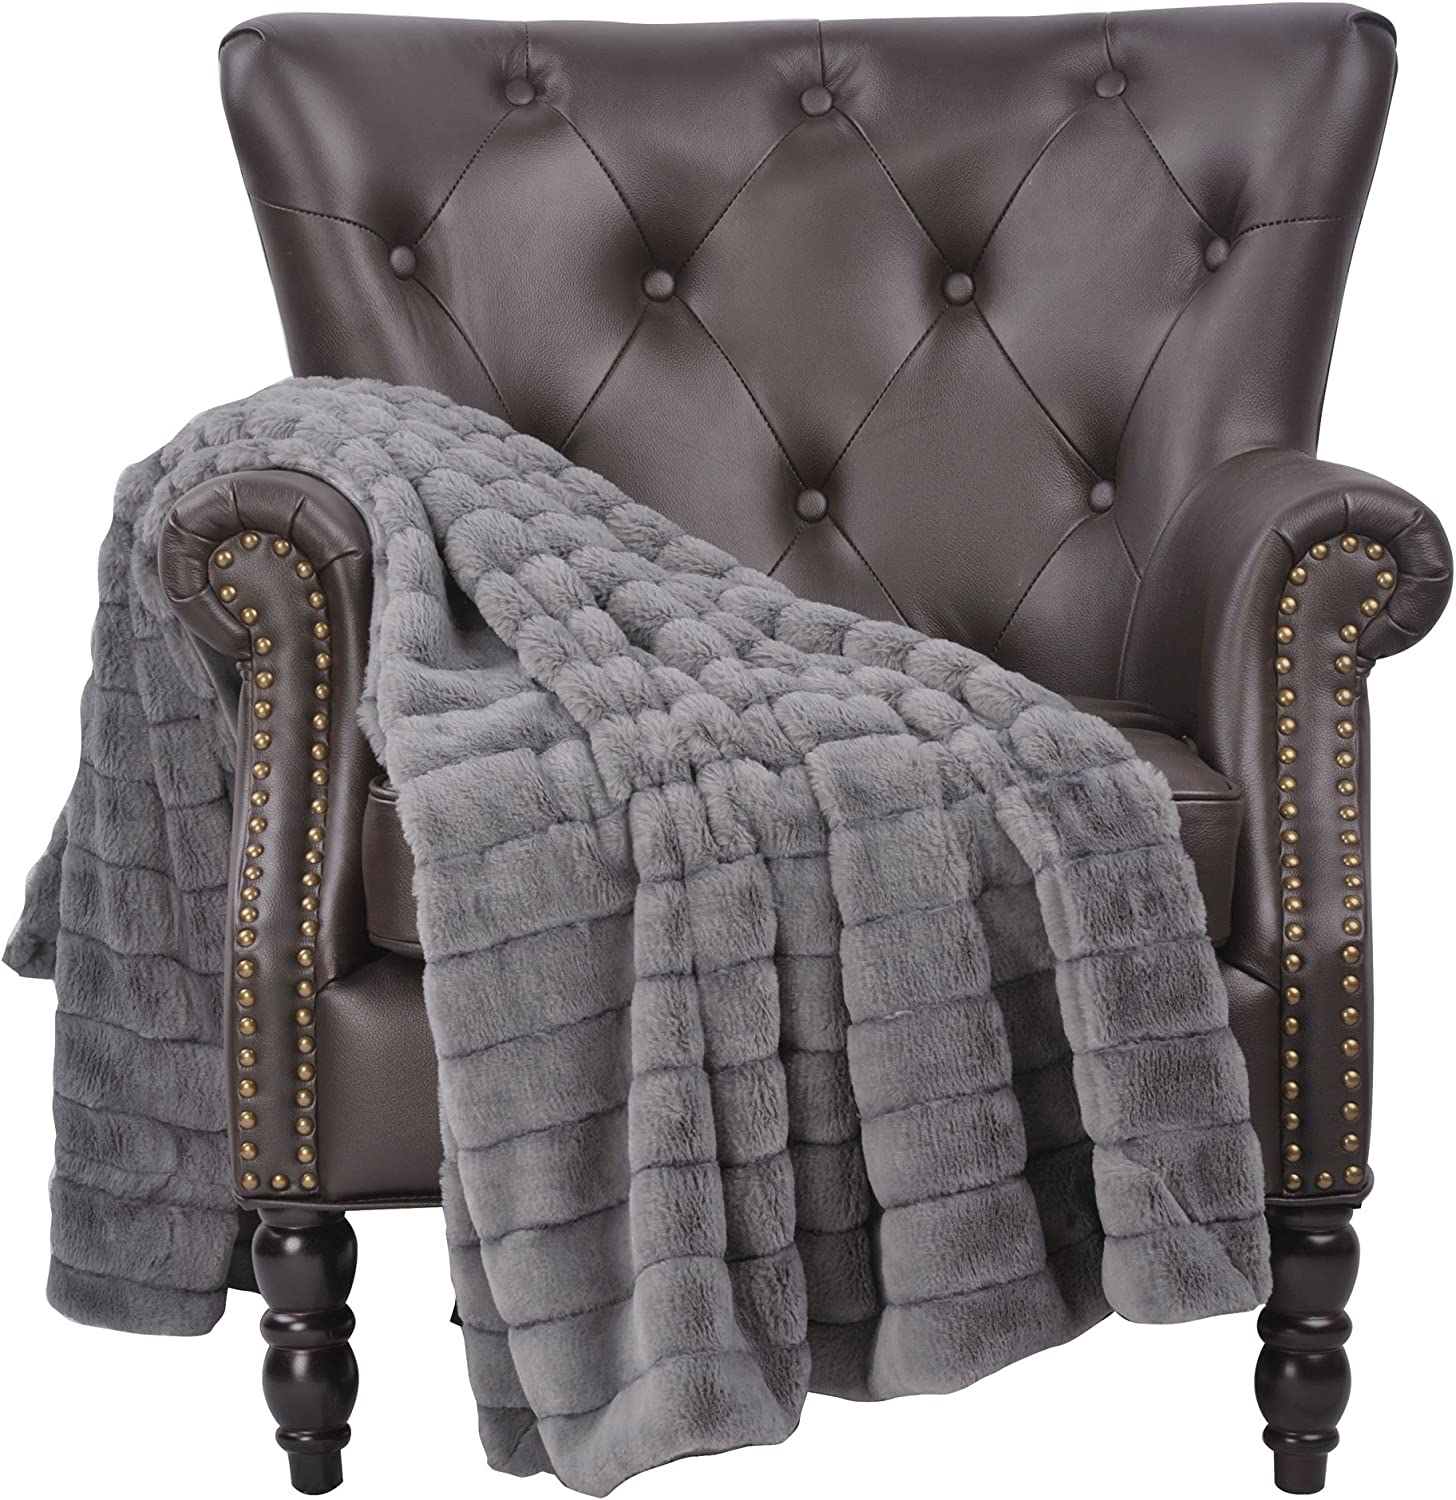 """Home Soft Things Super Mink Faux Fur Throw with Micromink Backing, 60"""" x 80"""", Gray"""